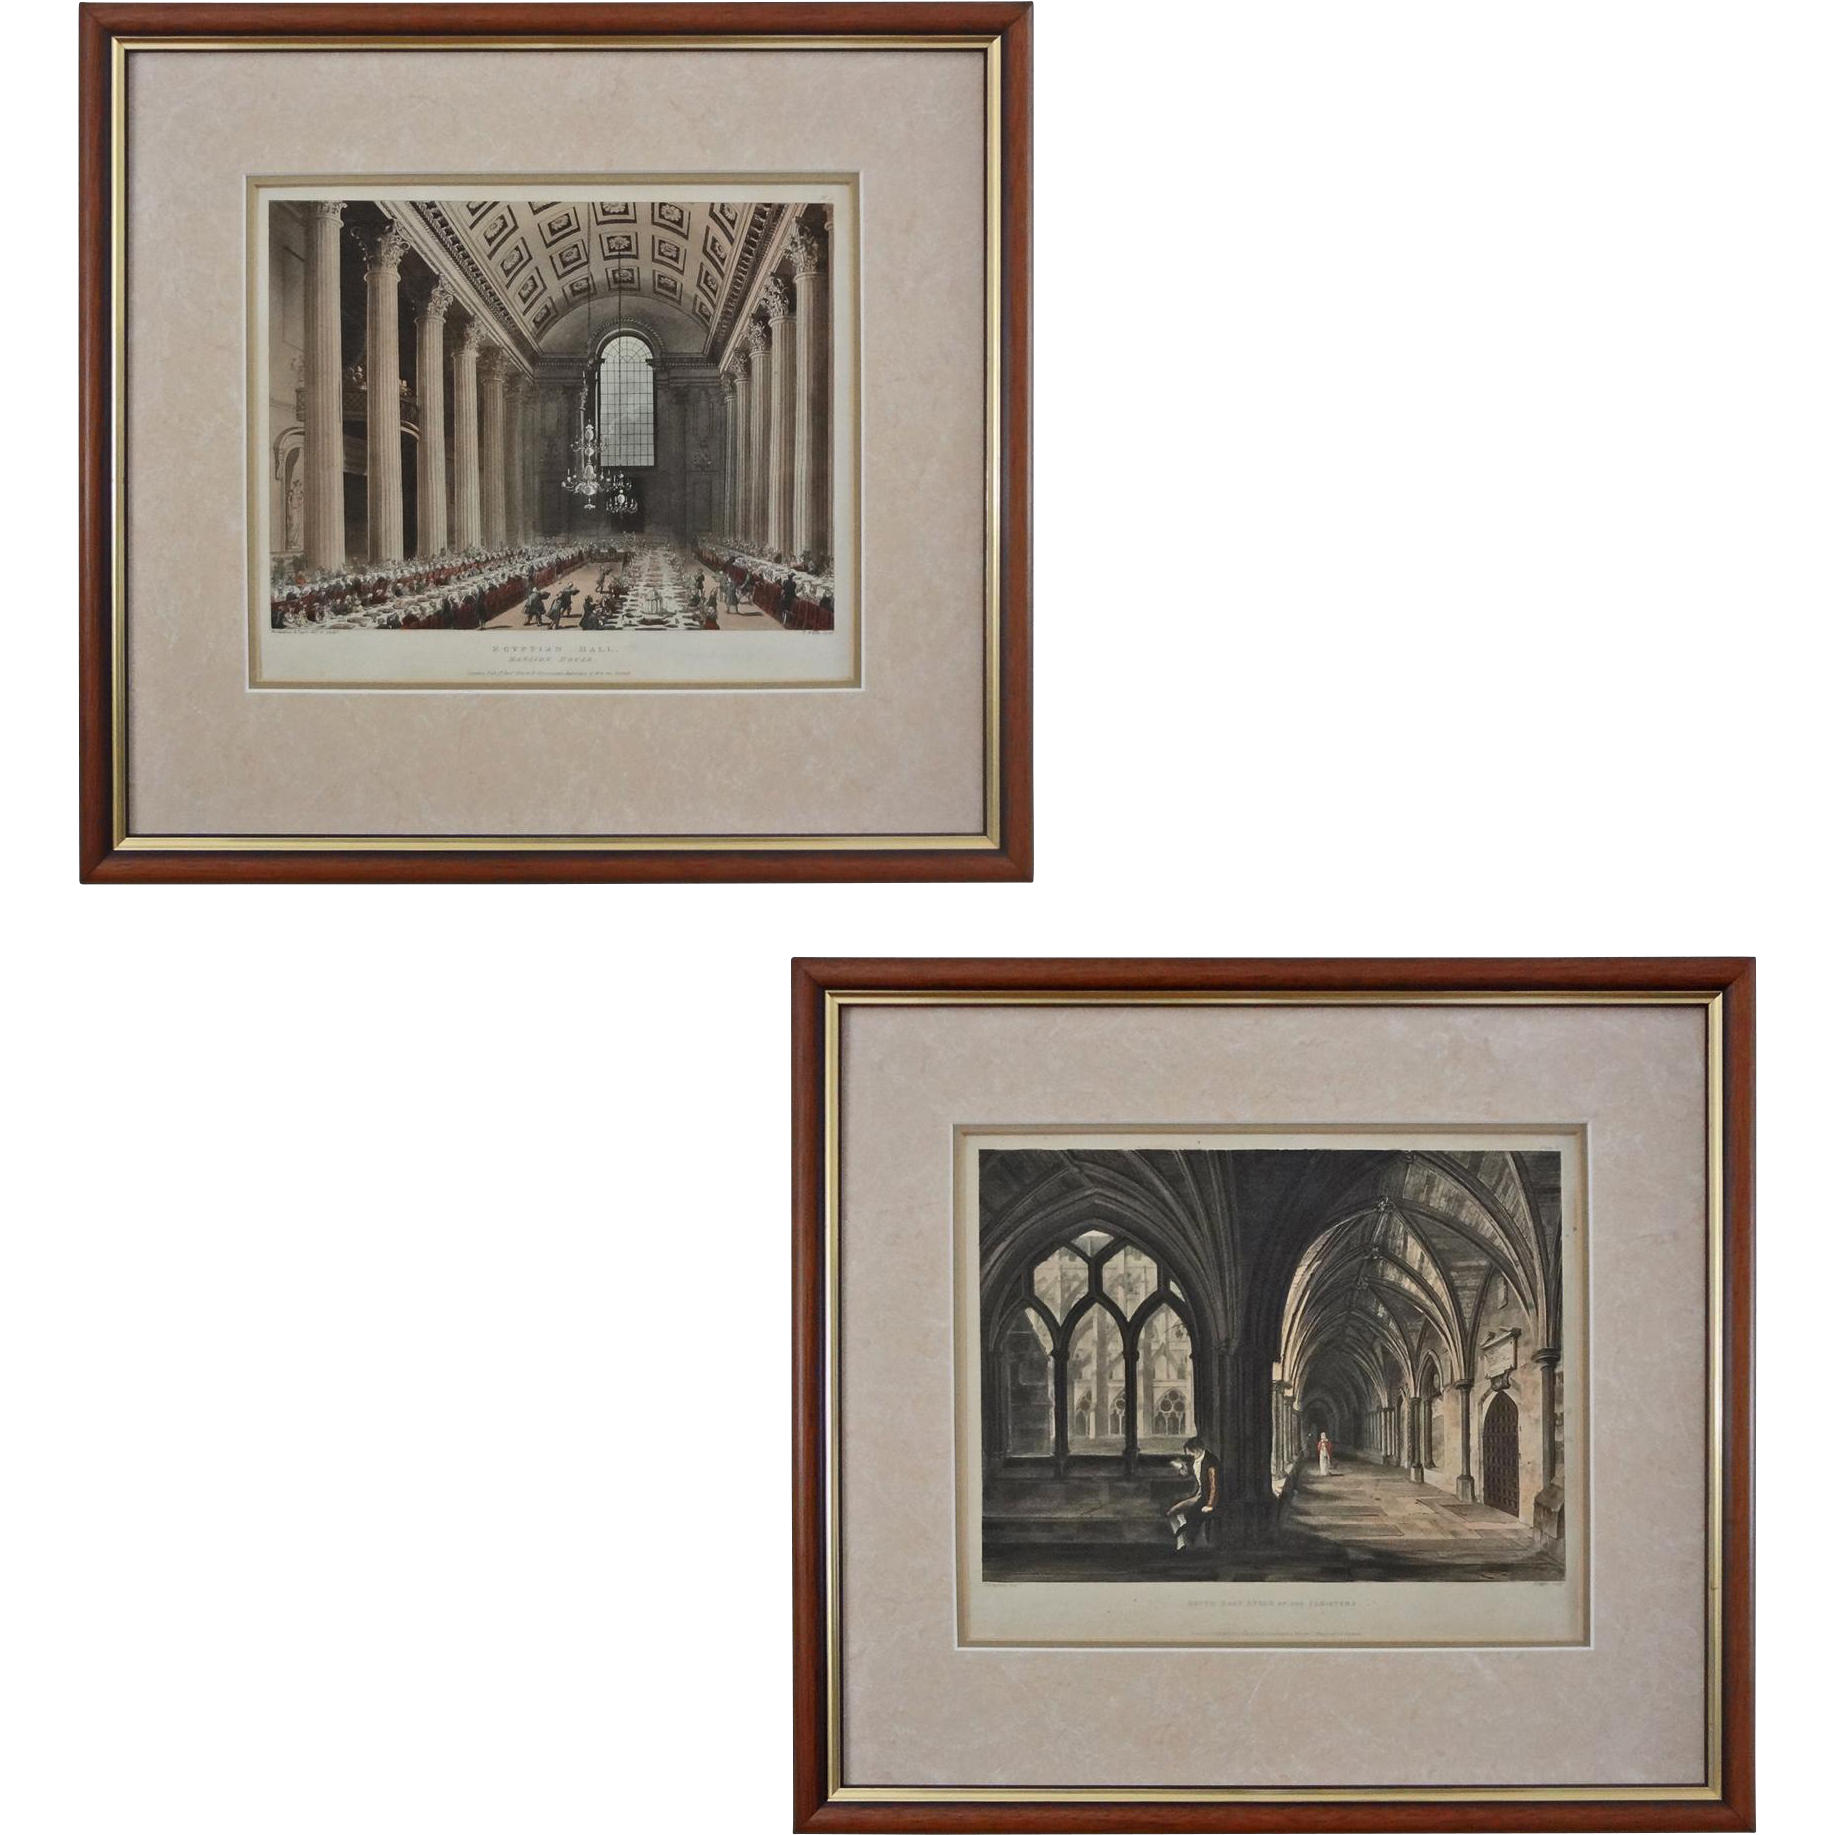 Pair Antique Aquatint / Etchings London Architecture Egyptian Hall and Cloisters - early 19th Century, England